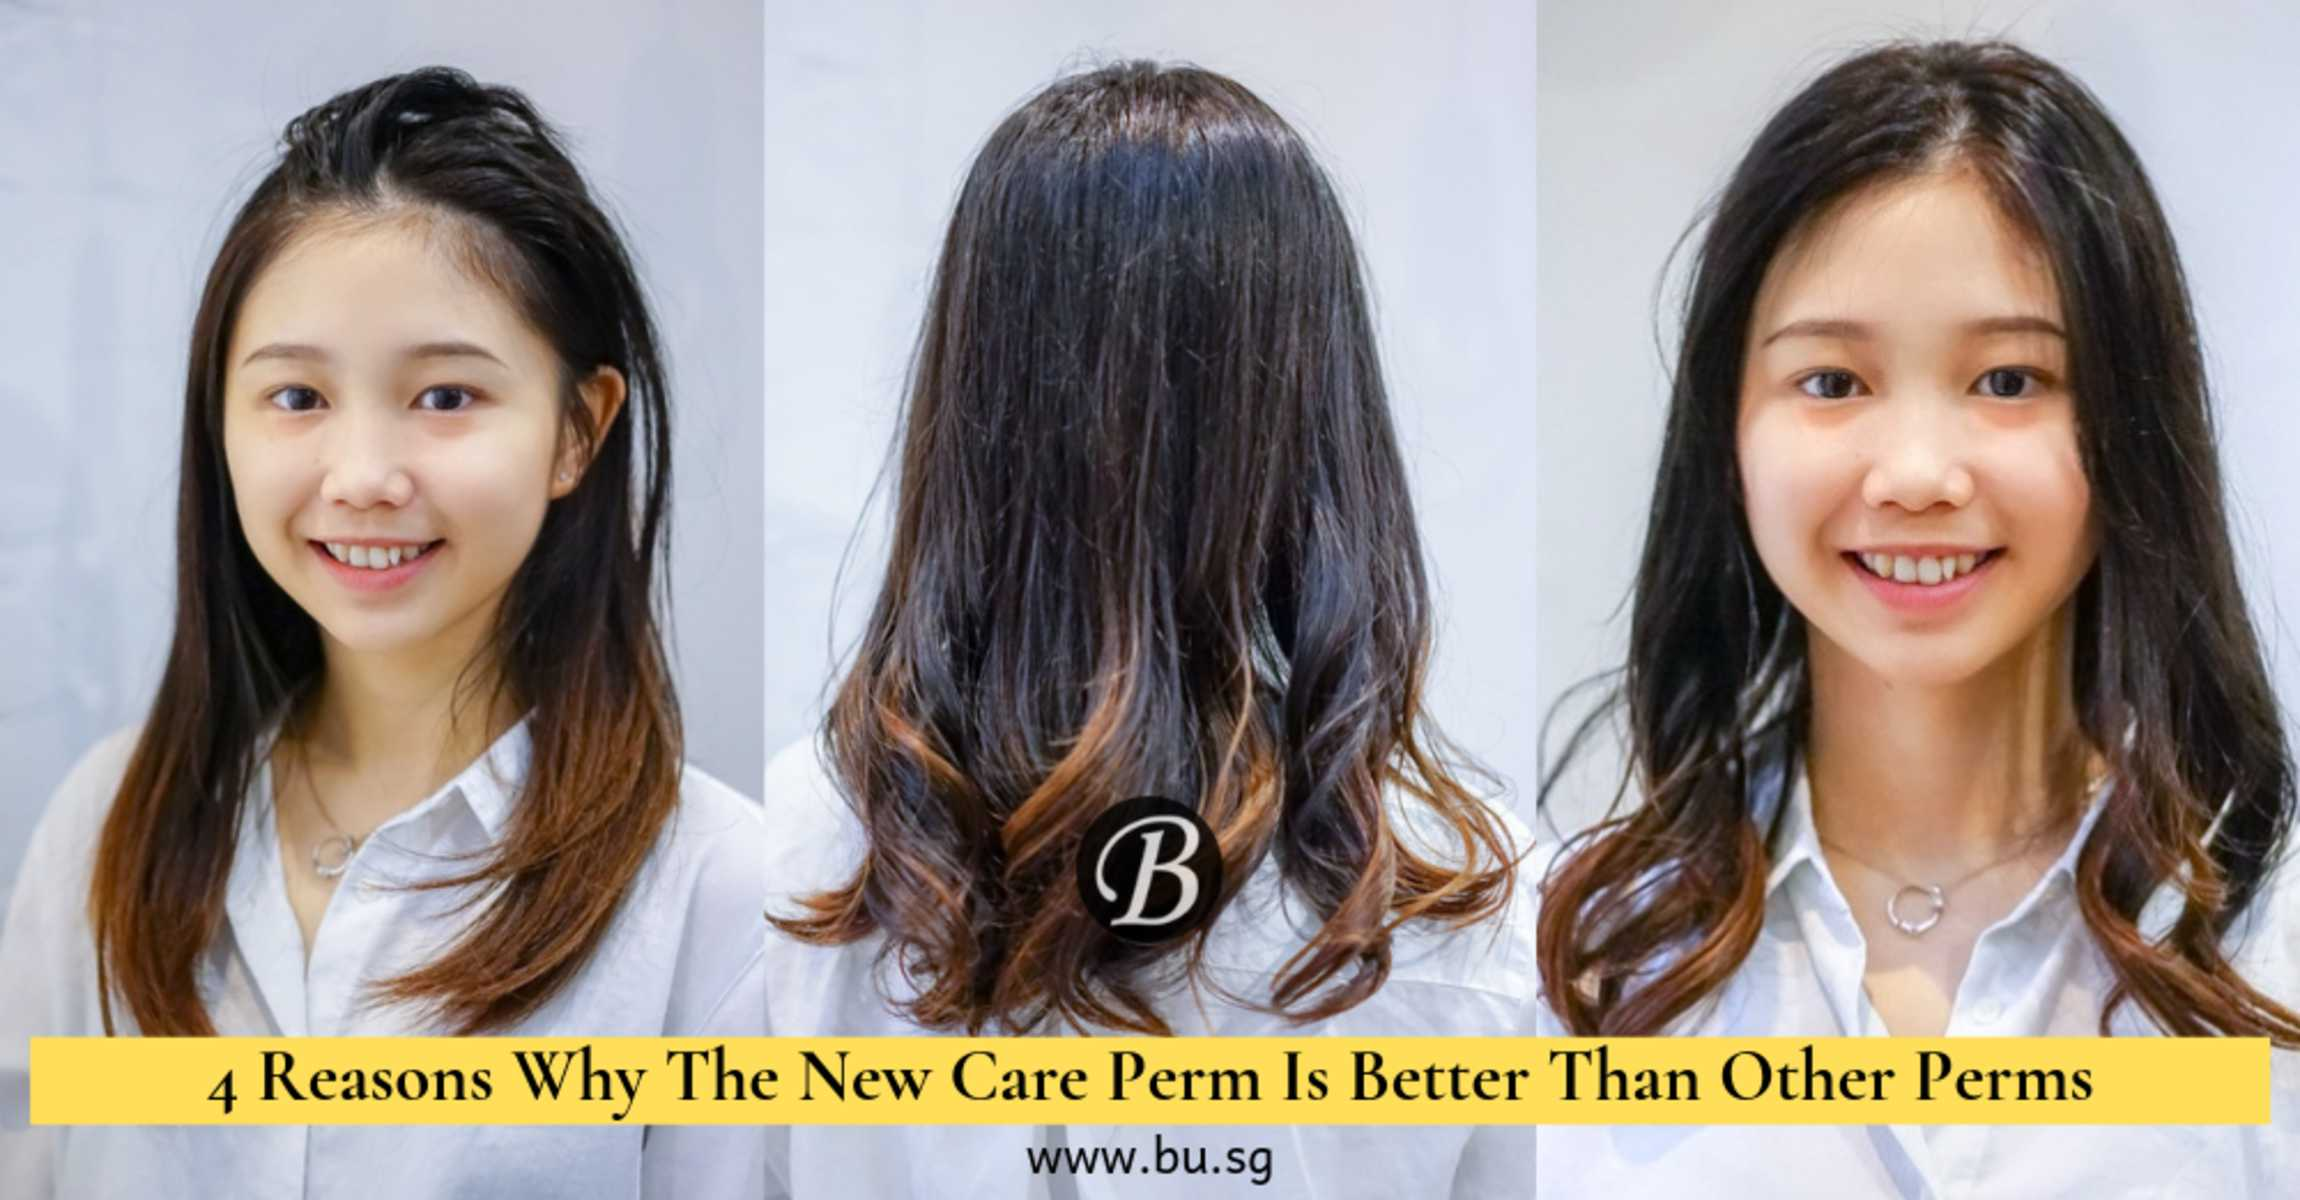 4 Reasons Why This New Care Perm is a MUST-TRY for Perm Beginners Looking for Natural Waves